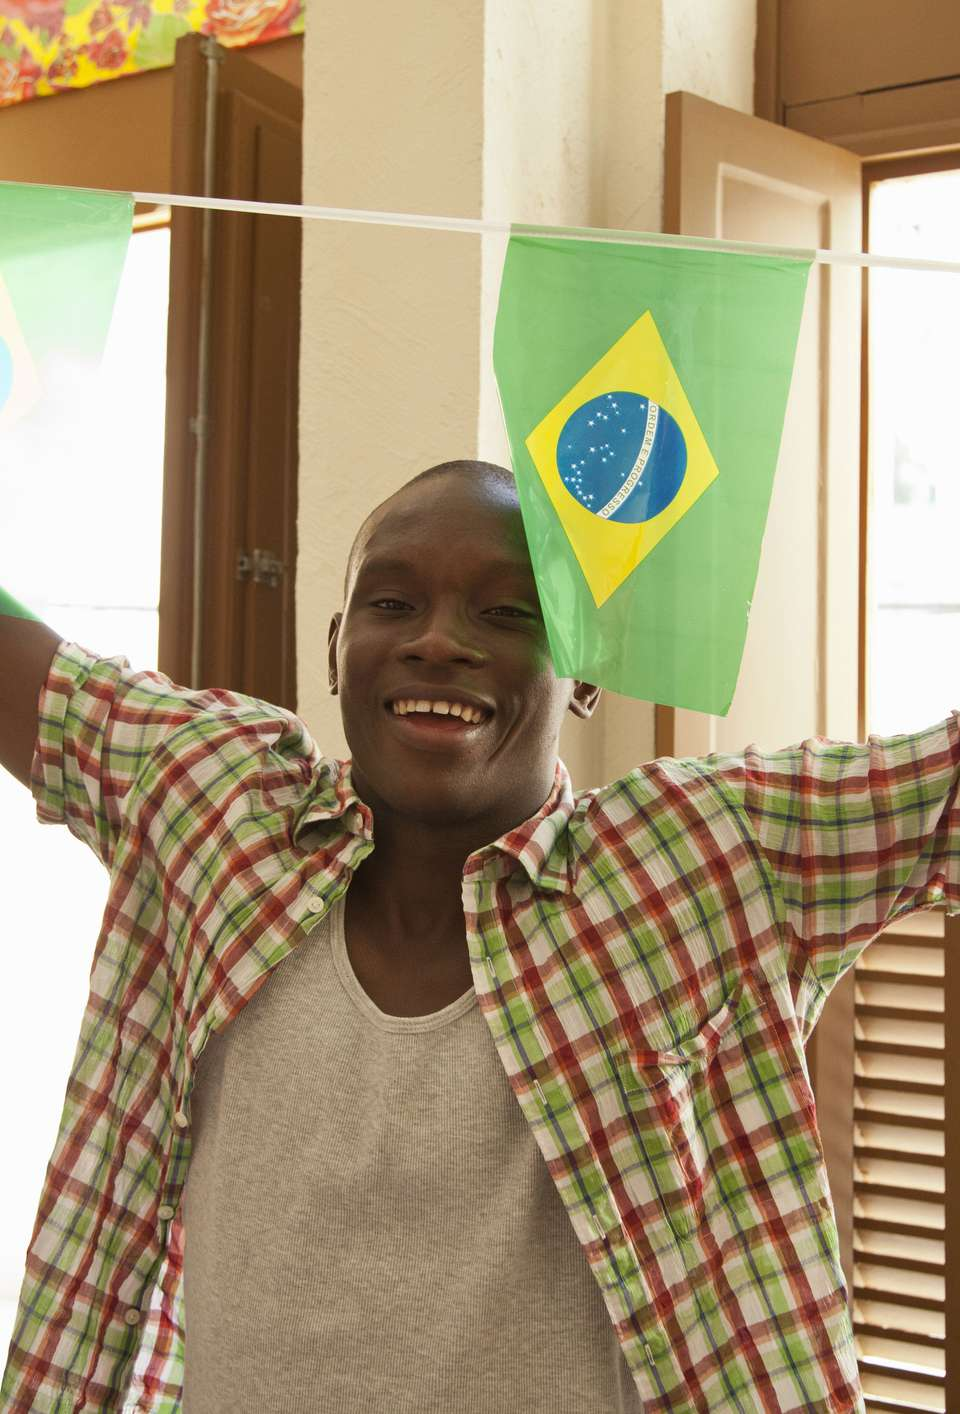 An exchange student poses with a string of Brazilian flags